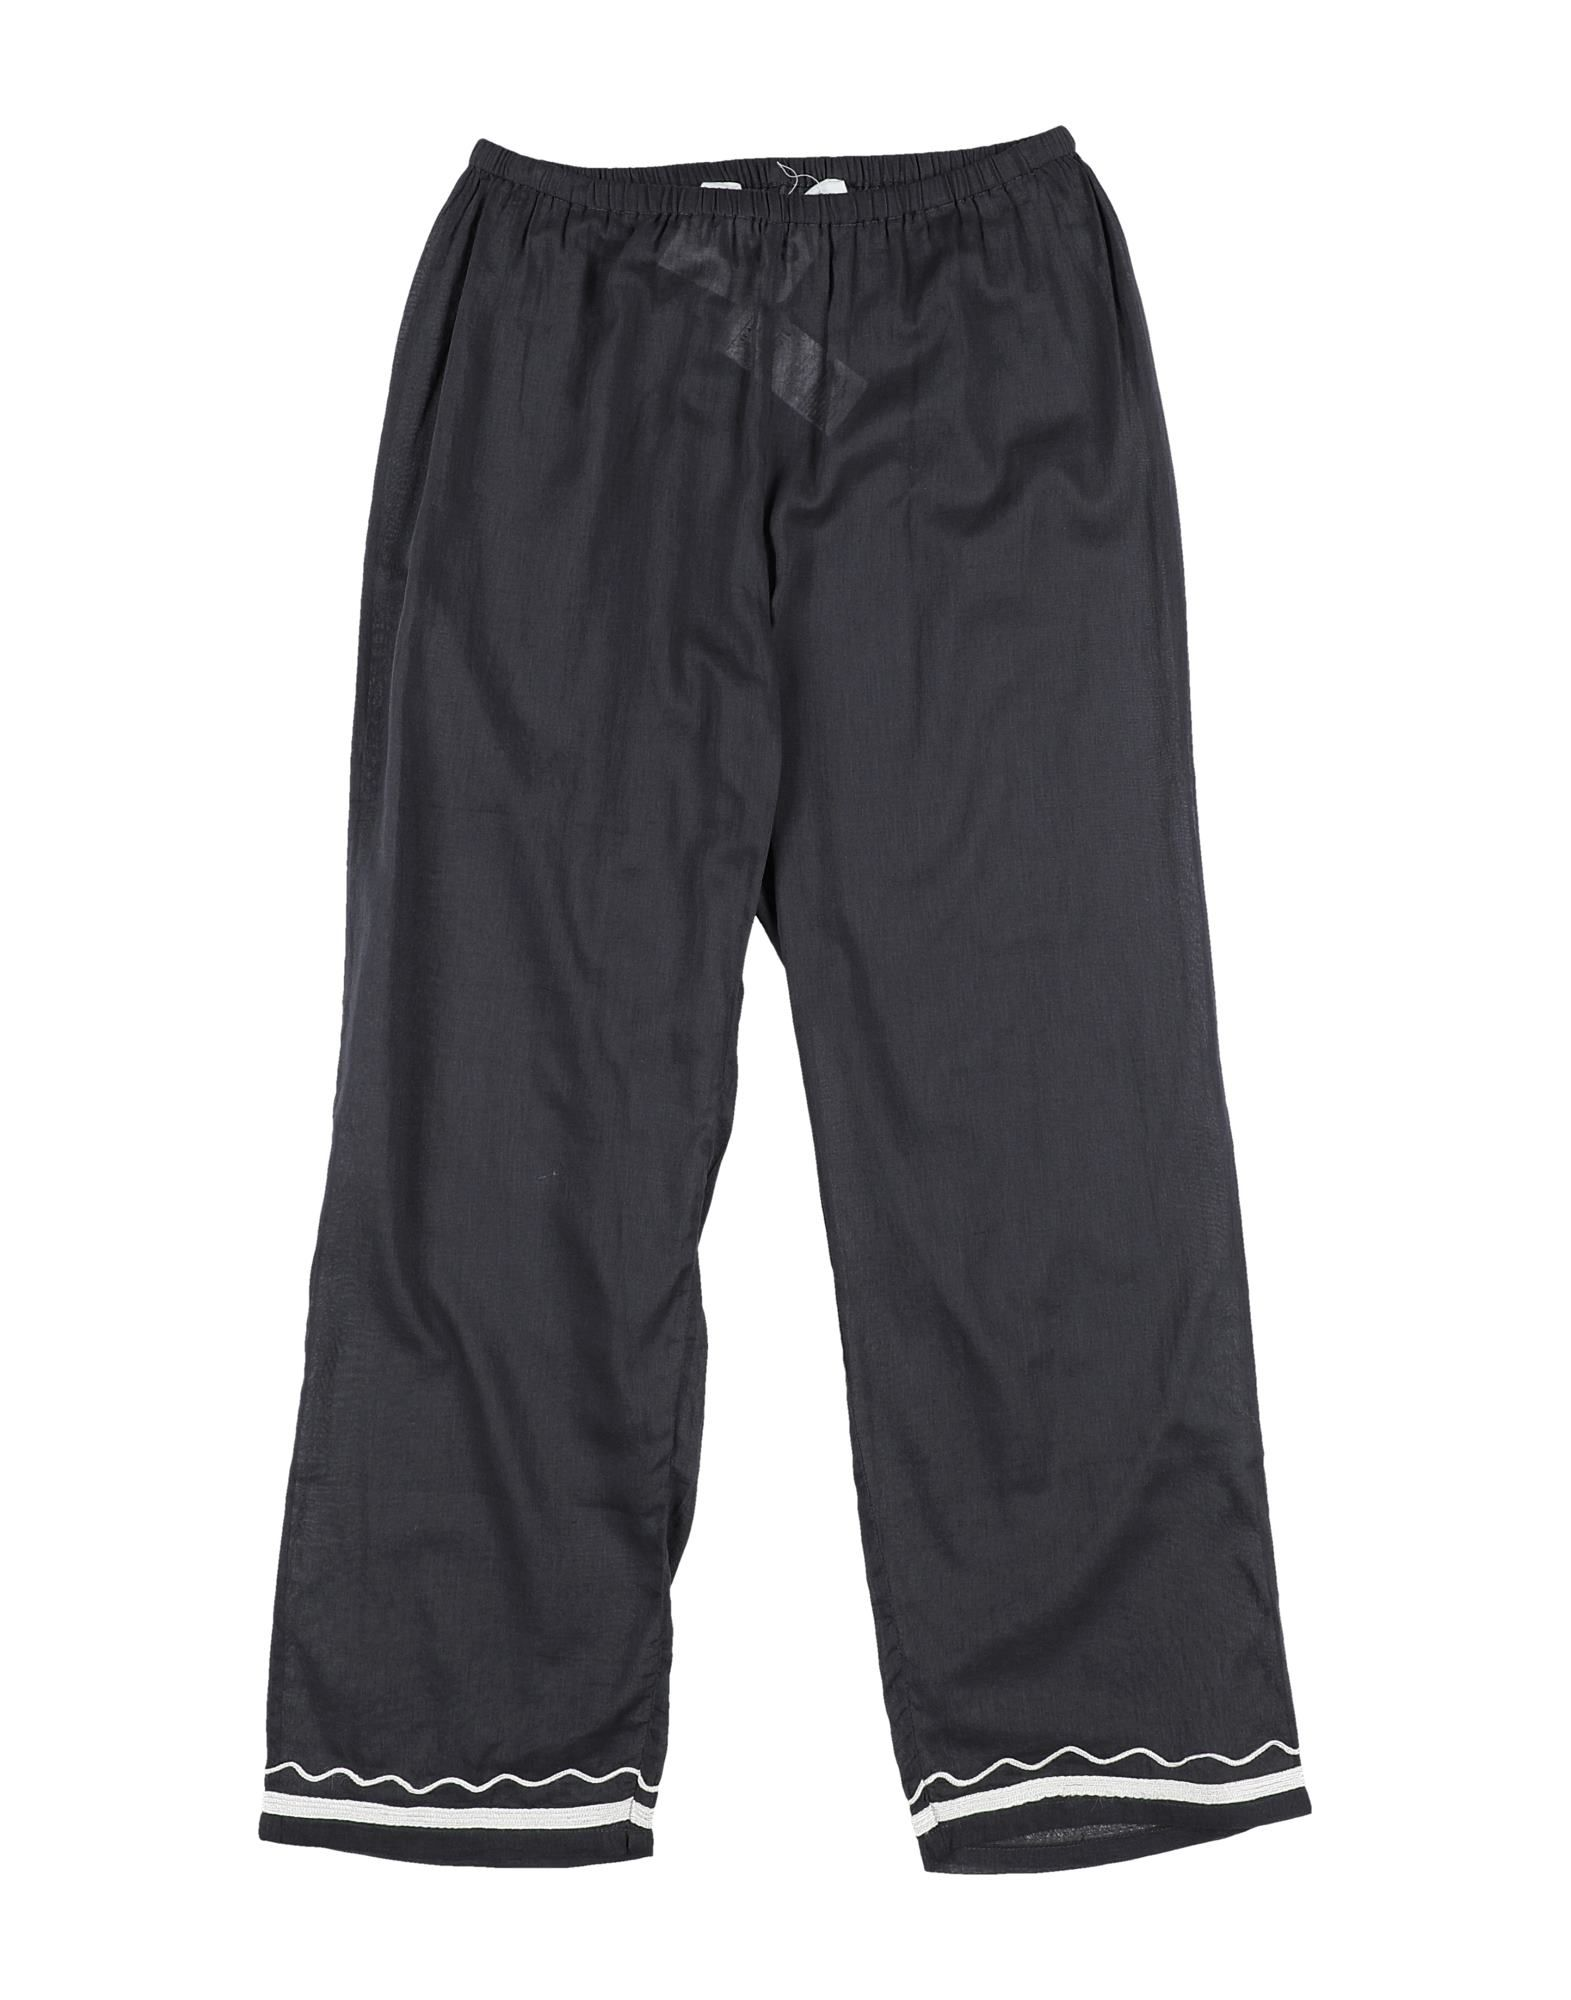 Touriste Kids' Casual Pants In Gray